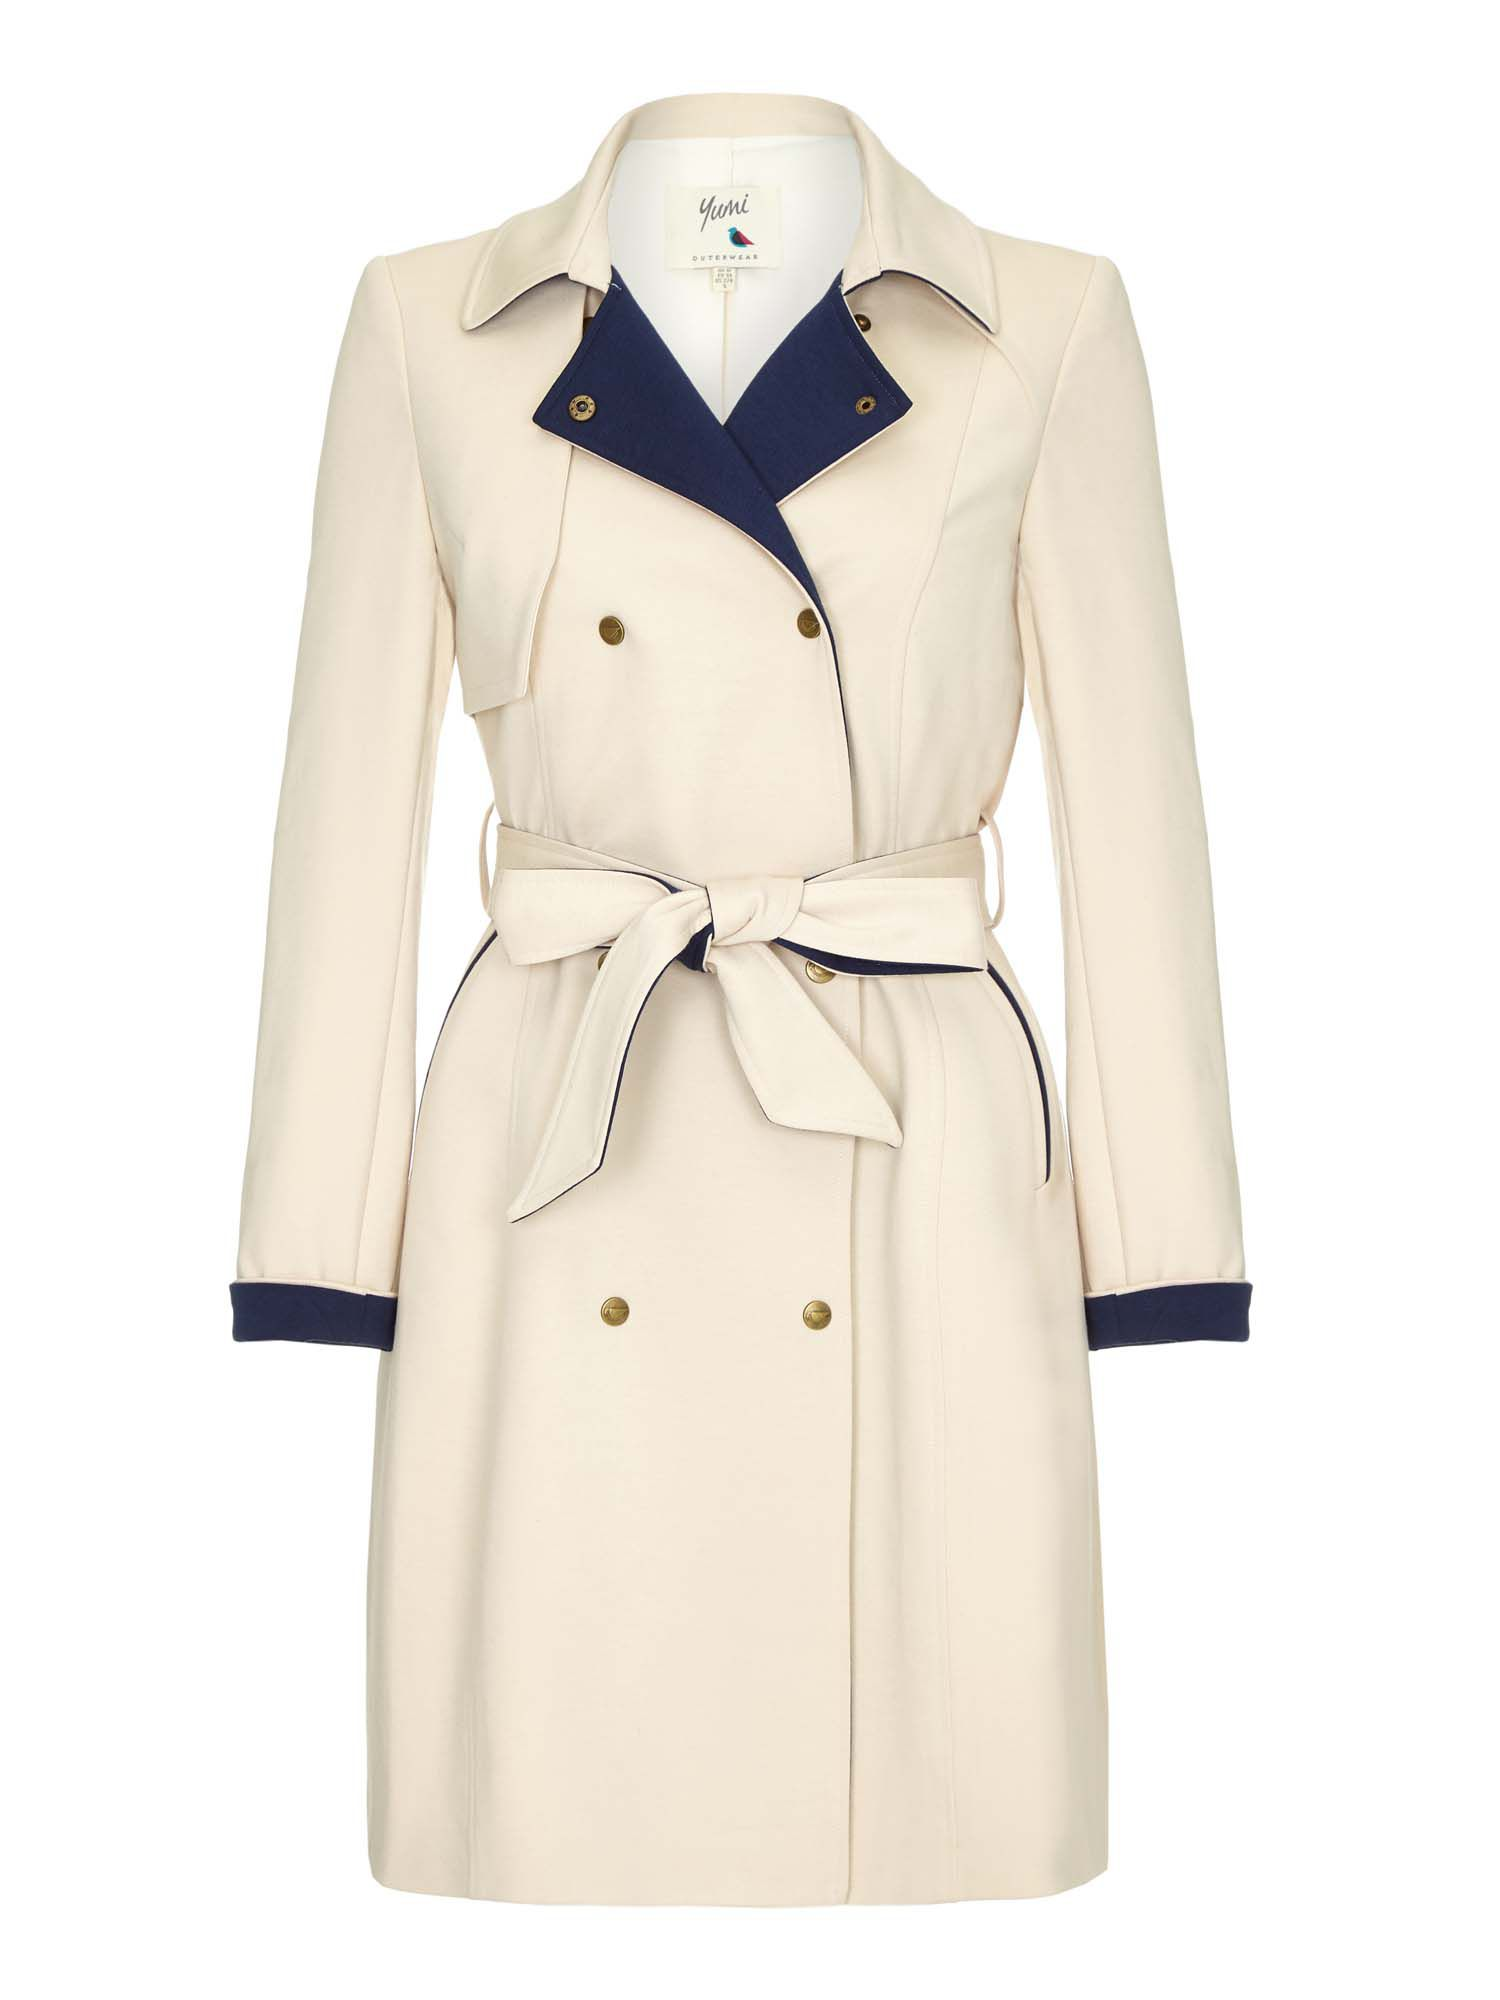 Retro Vintage Style Coats, Jackets, Fur Stoles Yumi Swing Hem Trench Coat Beige £90.00 AT vintagedancer.com